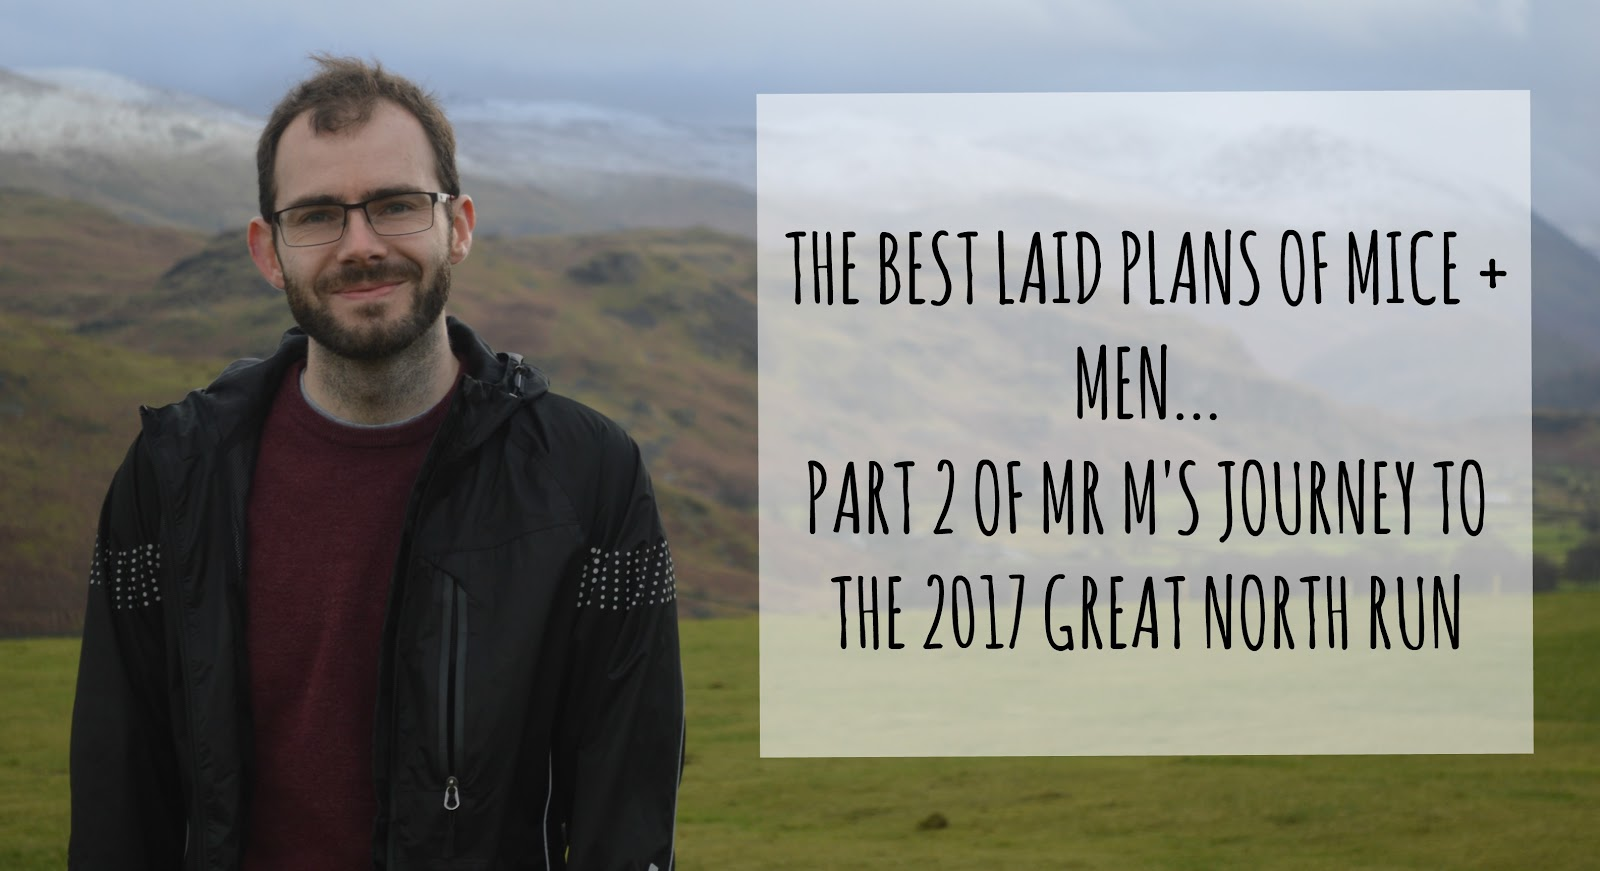 The best laid plans of mice and men…  MR. M'S JOURNEY TO THE 2017 GREAT NORTH RUN